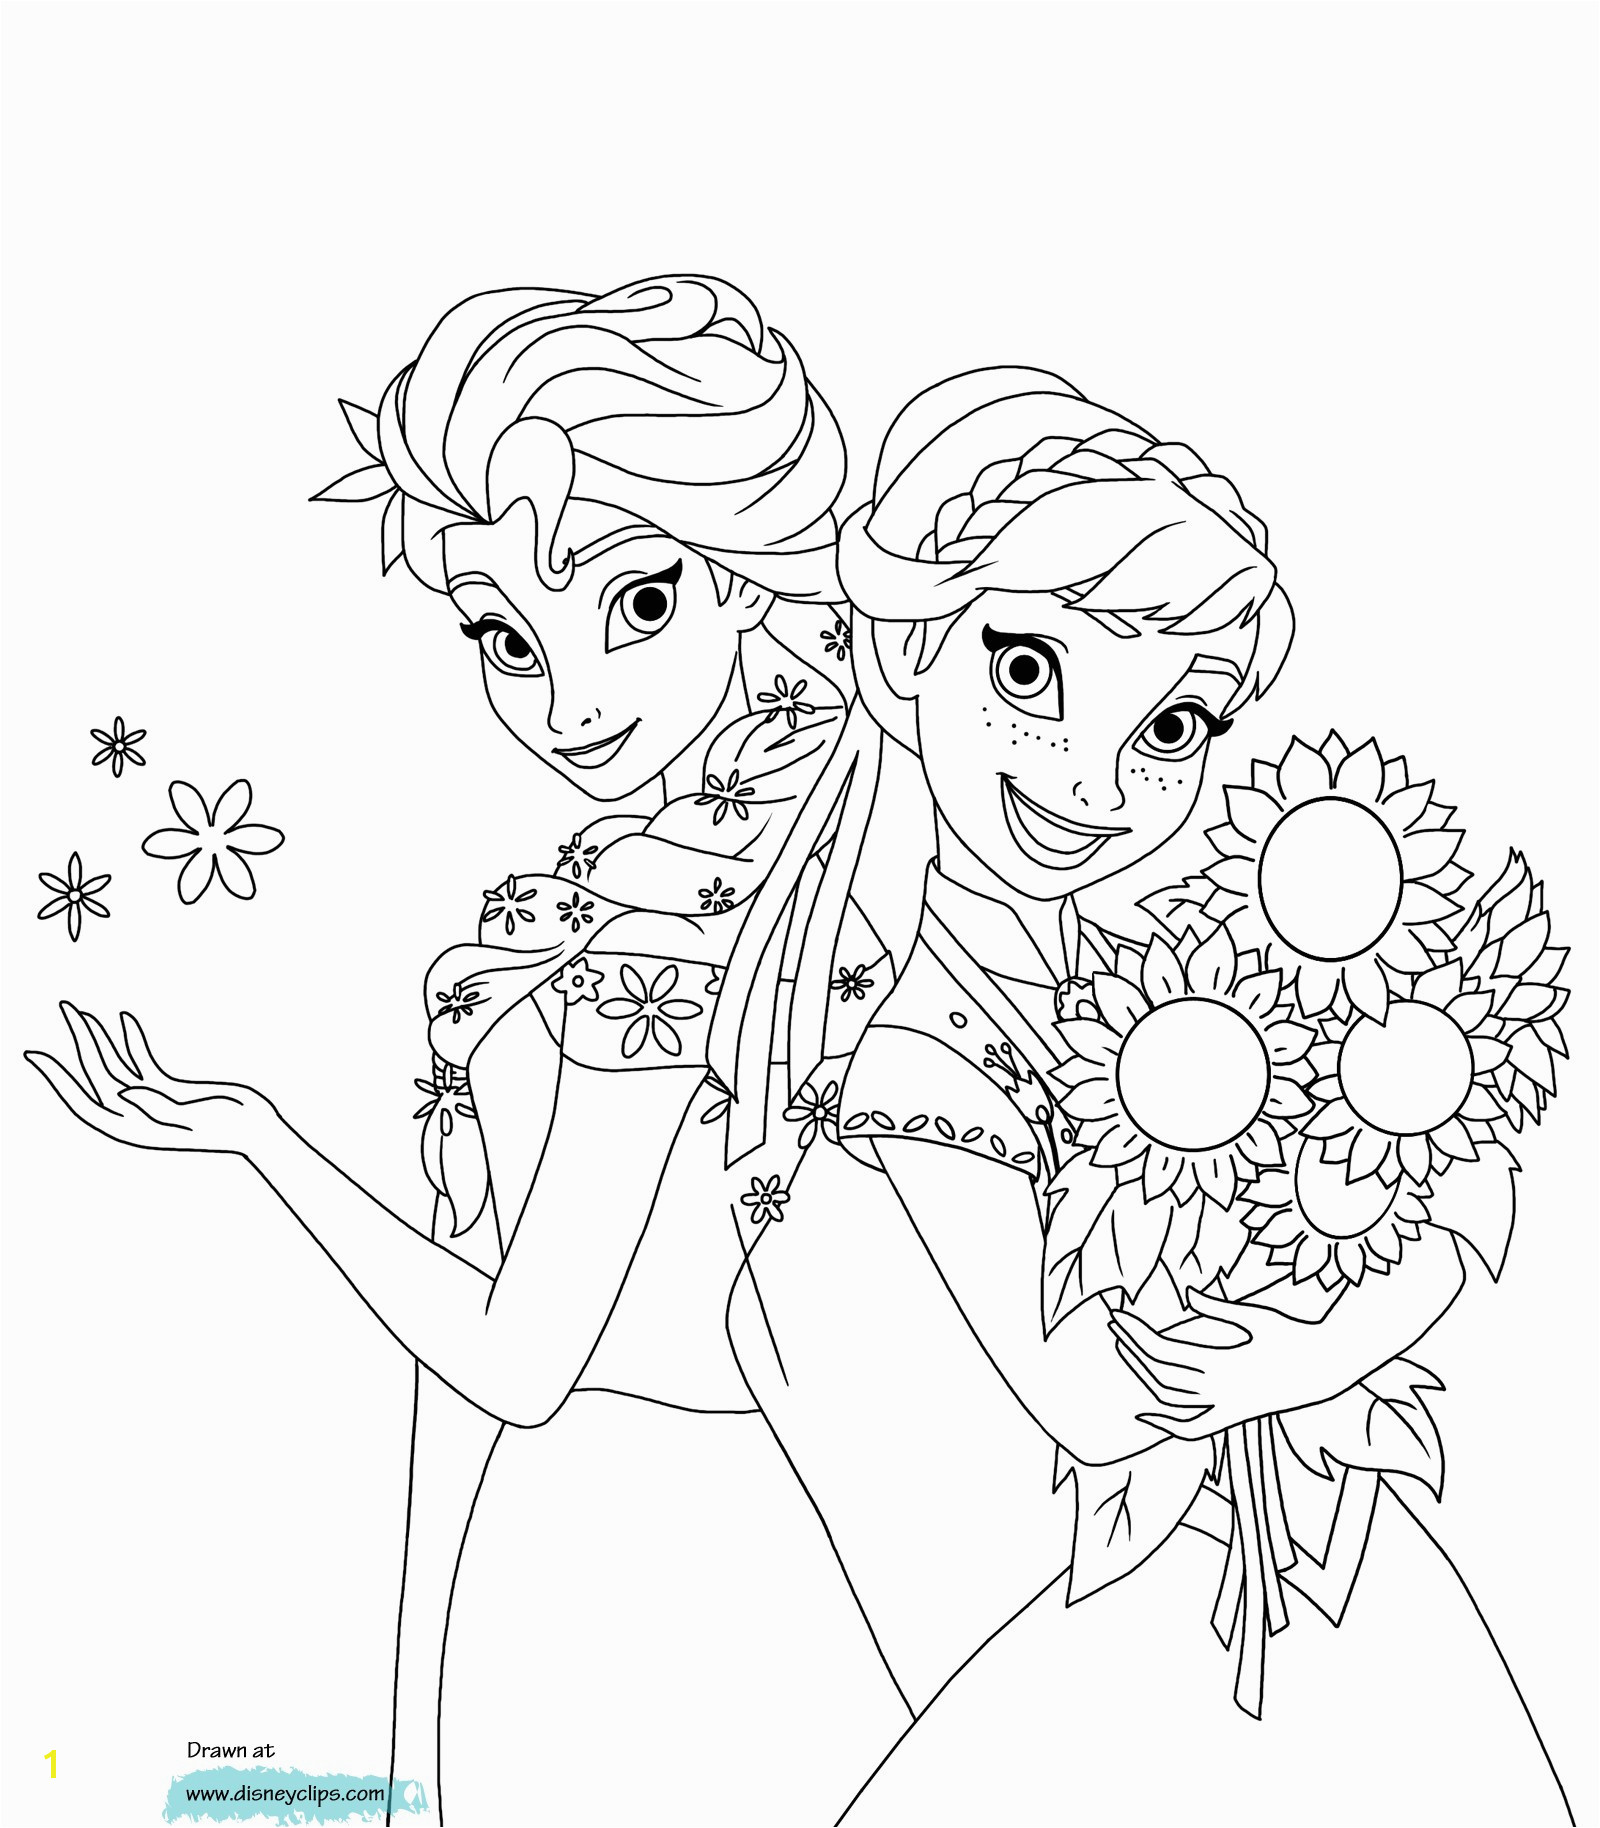 Elsa and ana Frozen Queen Elsa Coloring Pages Printable Coloring Panda